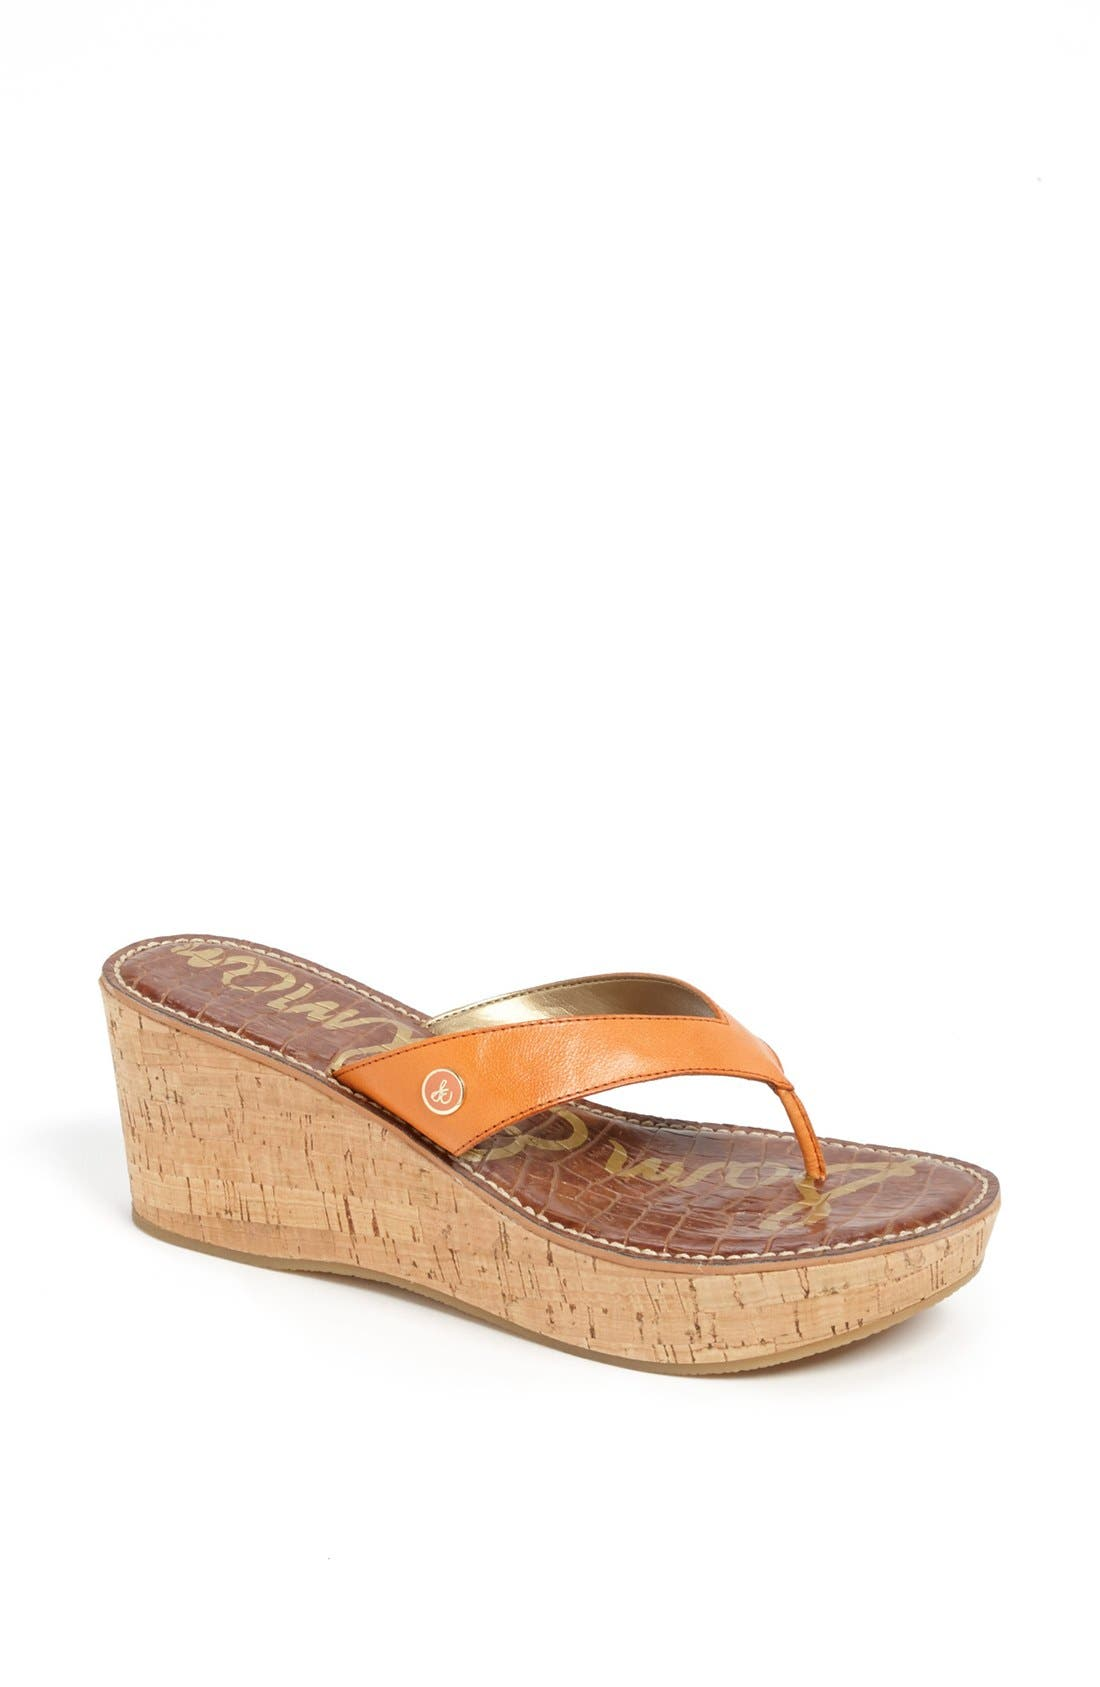 Alternate Image 1 Selected - Sam Edelman 'Romy' Wedge Sandal (Women)